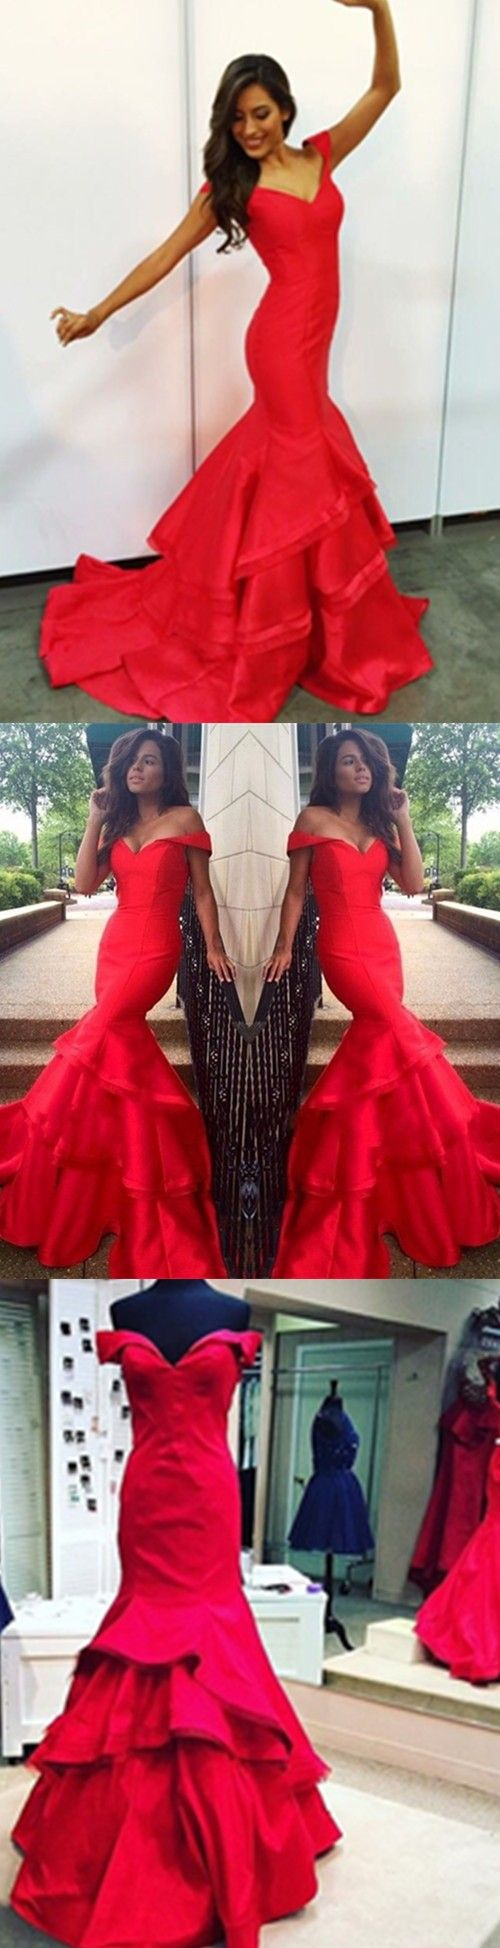 Sexy Mermaid Prom Dresses 2017 Red Full Lace Prom Dresses V Neck Backless Evening Dresses ,Sexy Backless Evening Dress, Red Prom Dress, Off the Shoulder Prom Dresses, Red Formal Dress, Long Prom Gowns, Mermaid Prom Gown